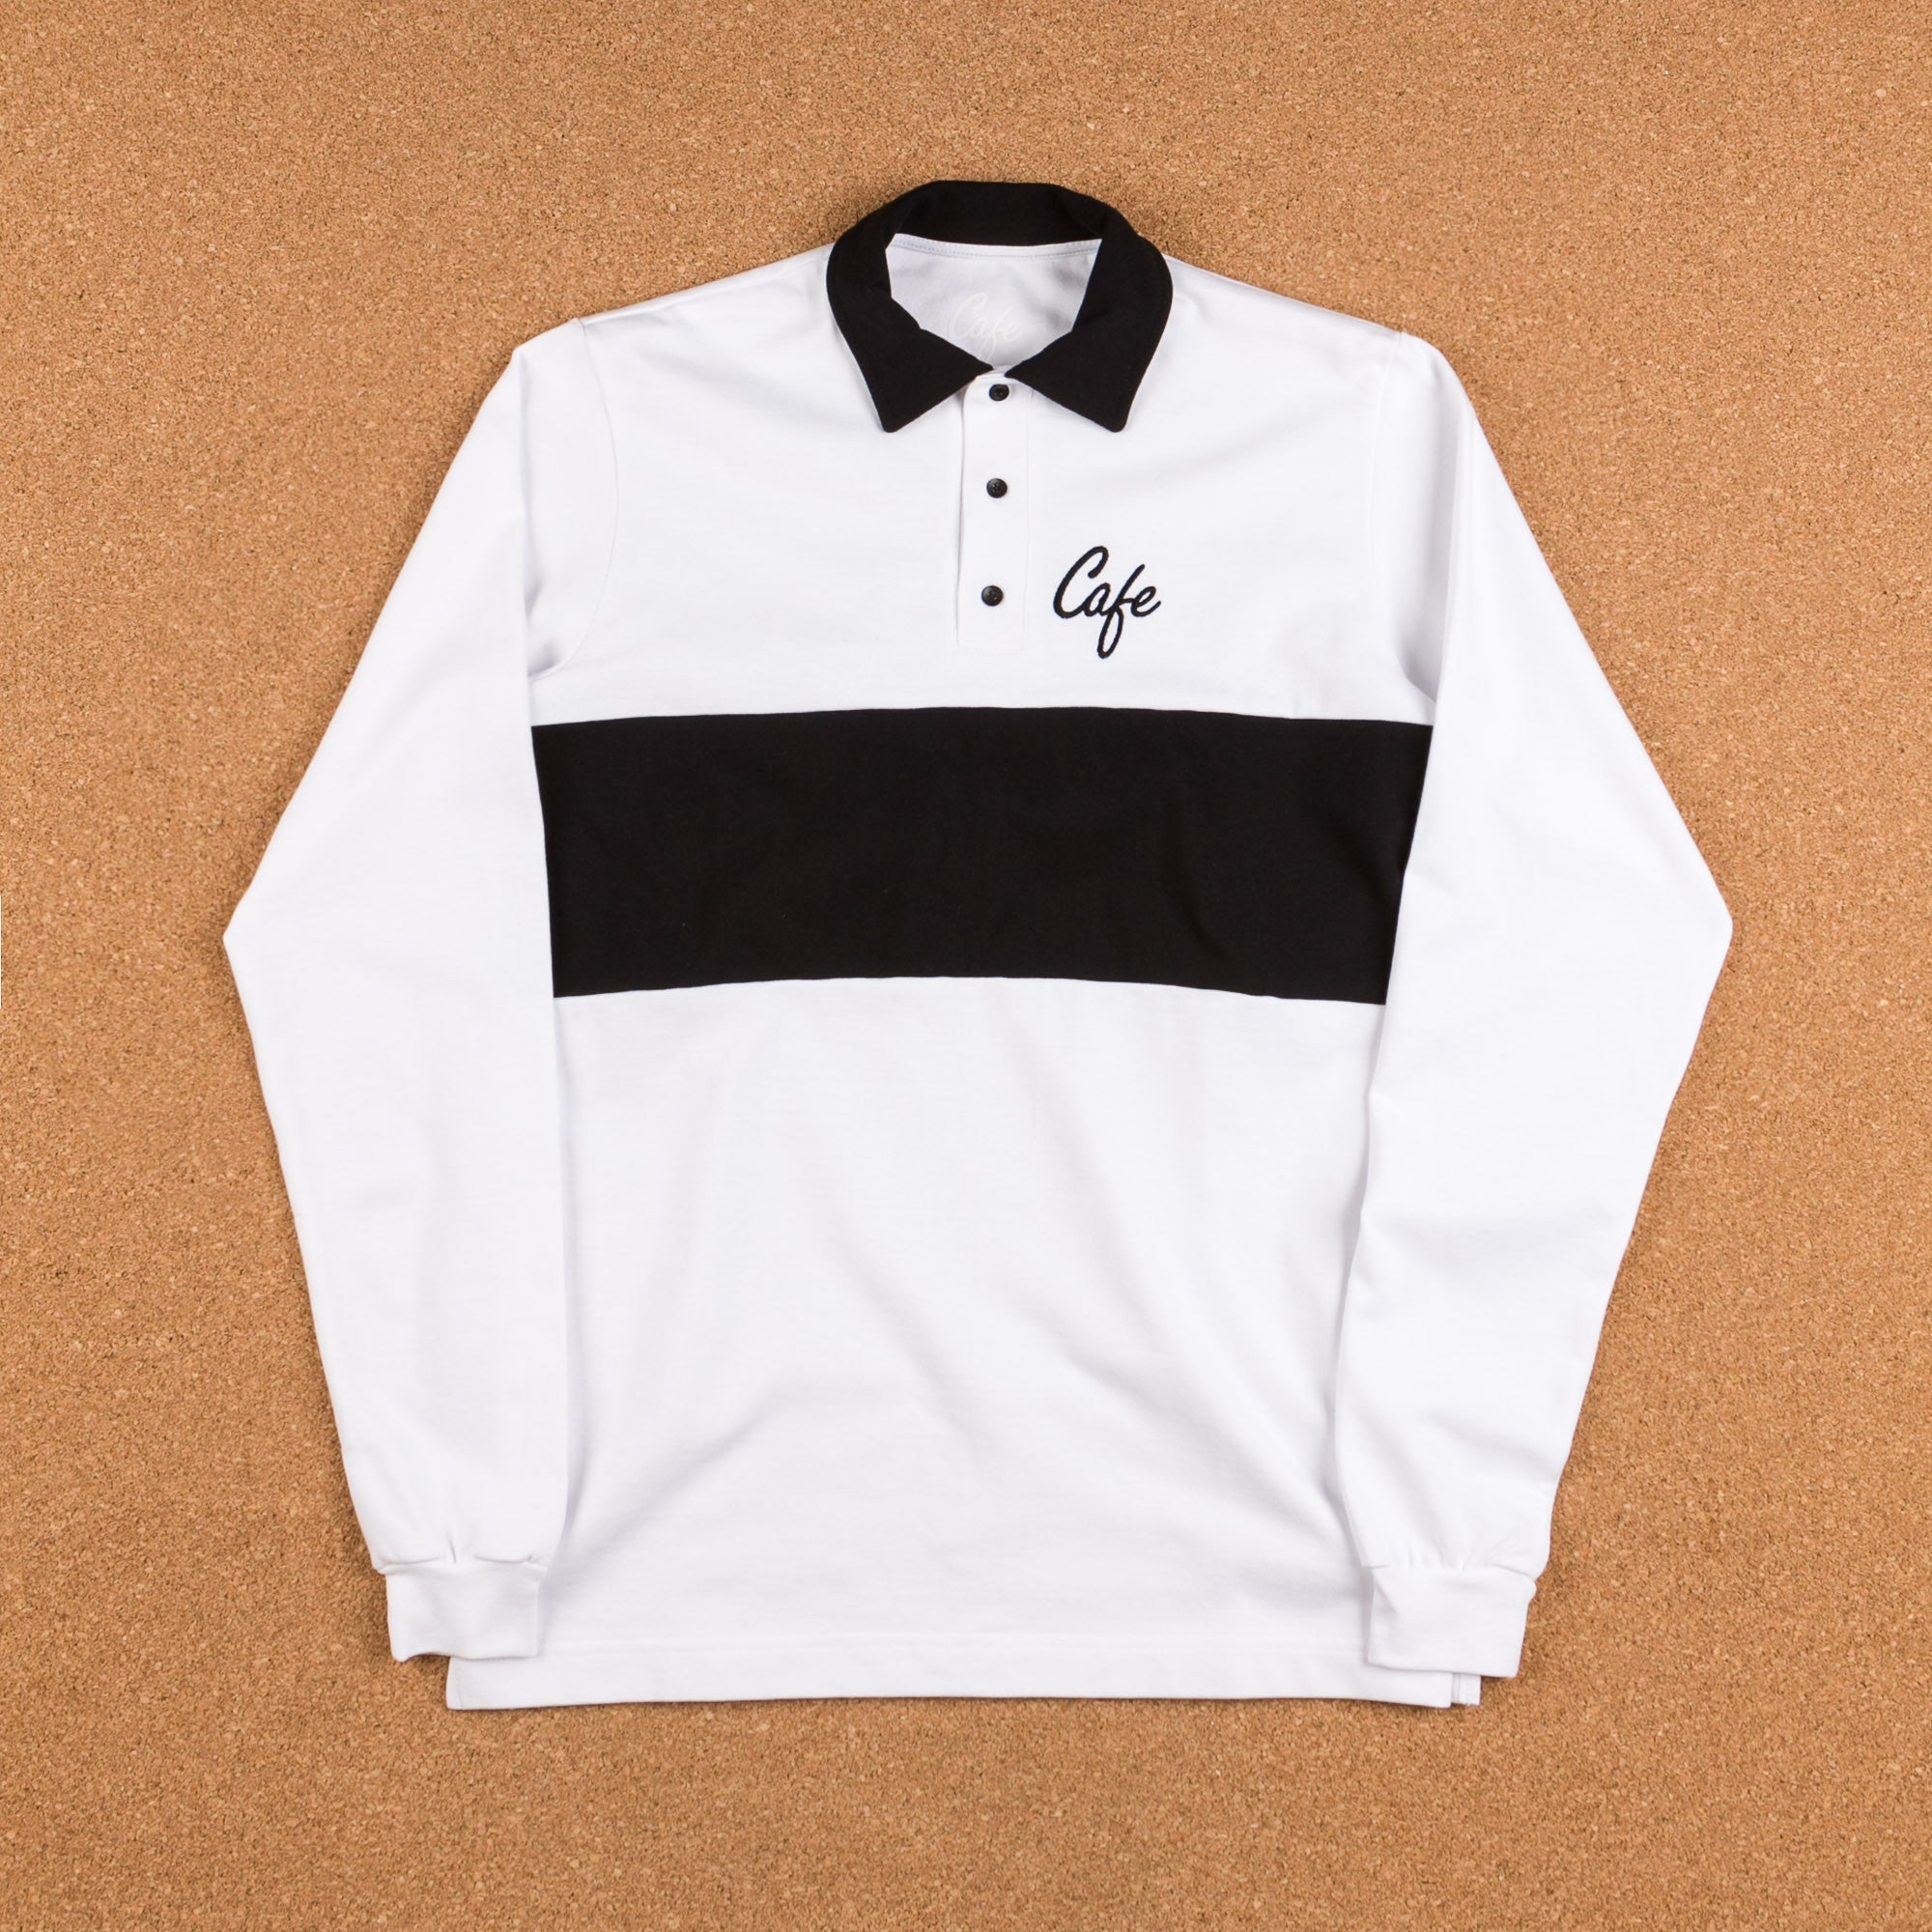 Skateboard Cafe Script Long Sleeve Polo Shirt - White / Black